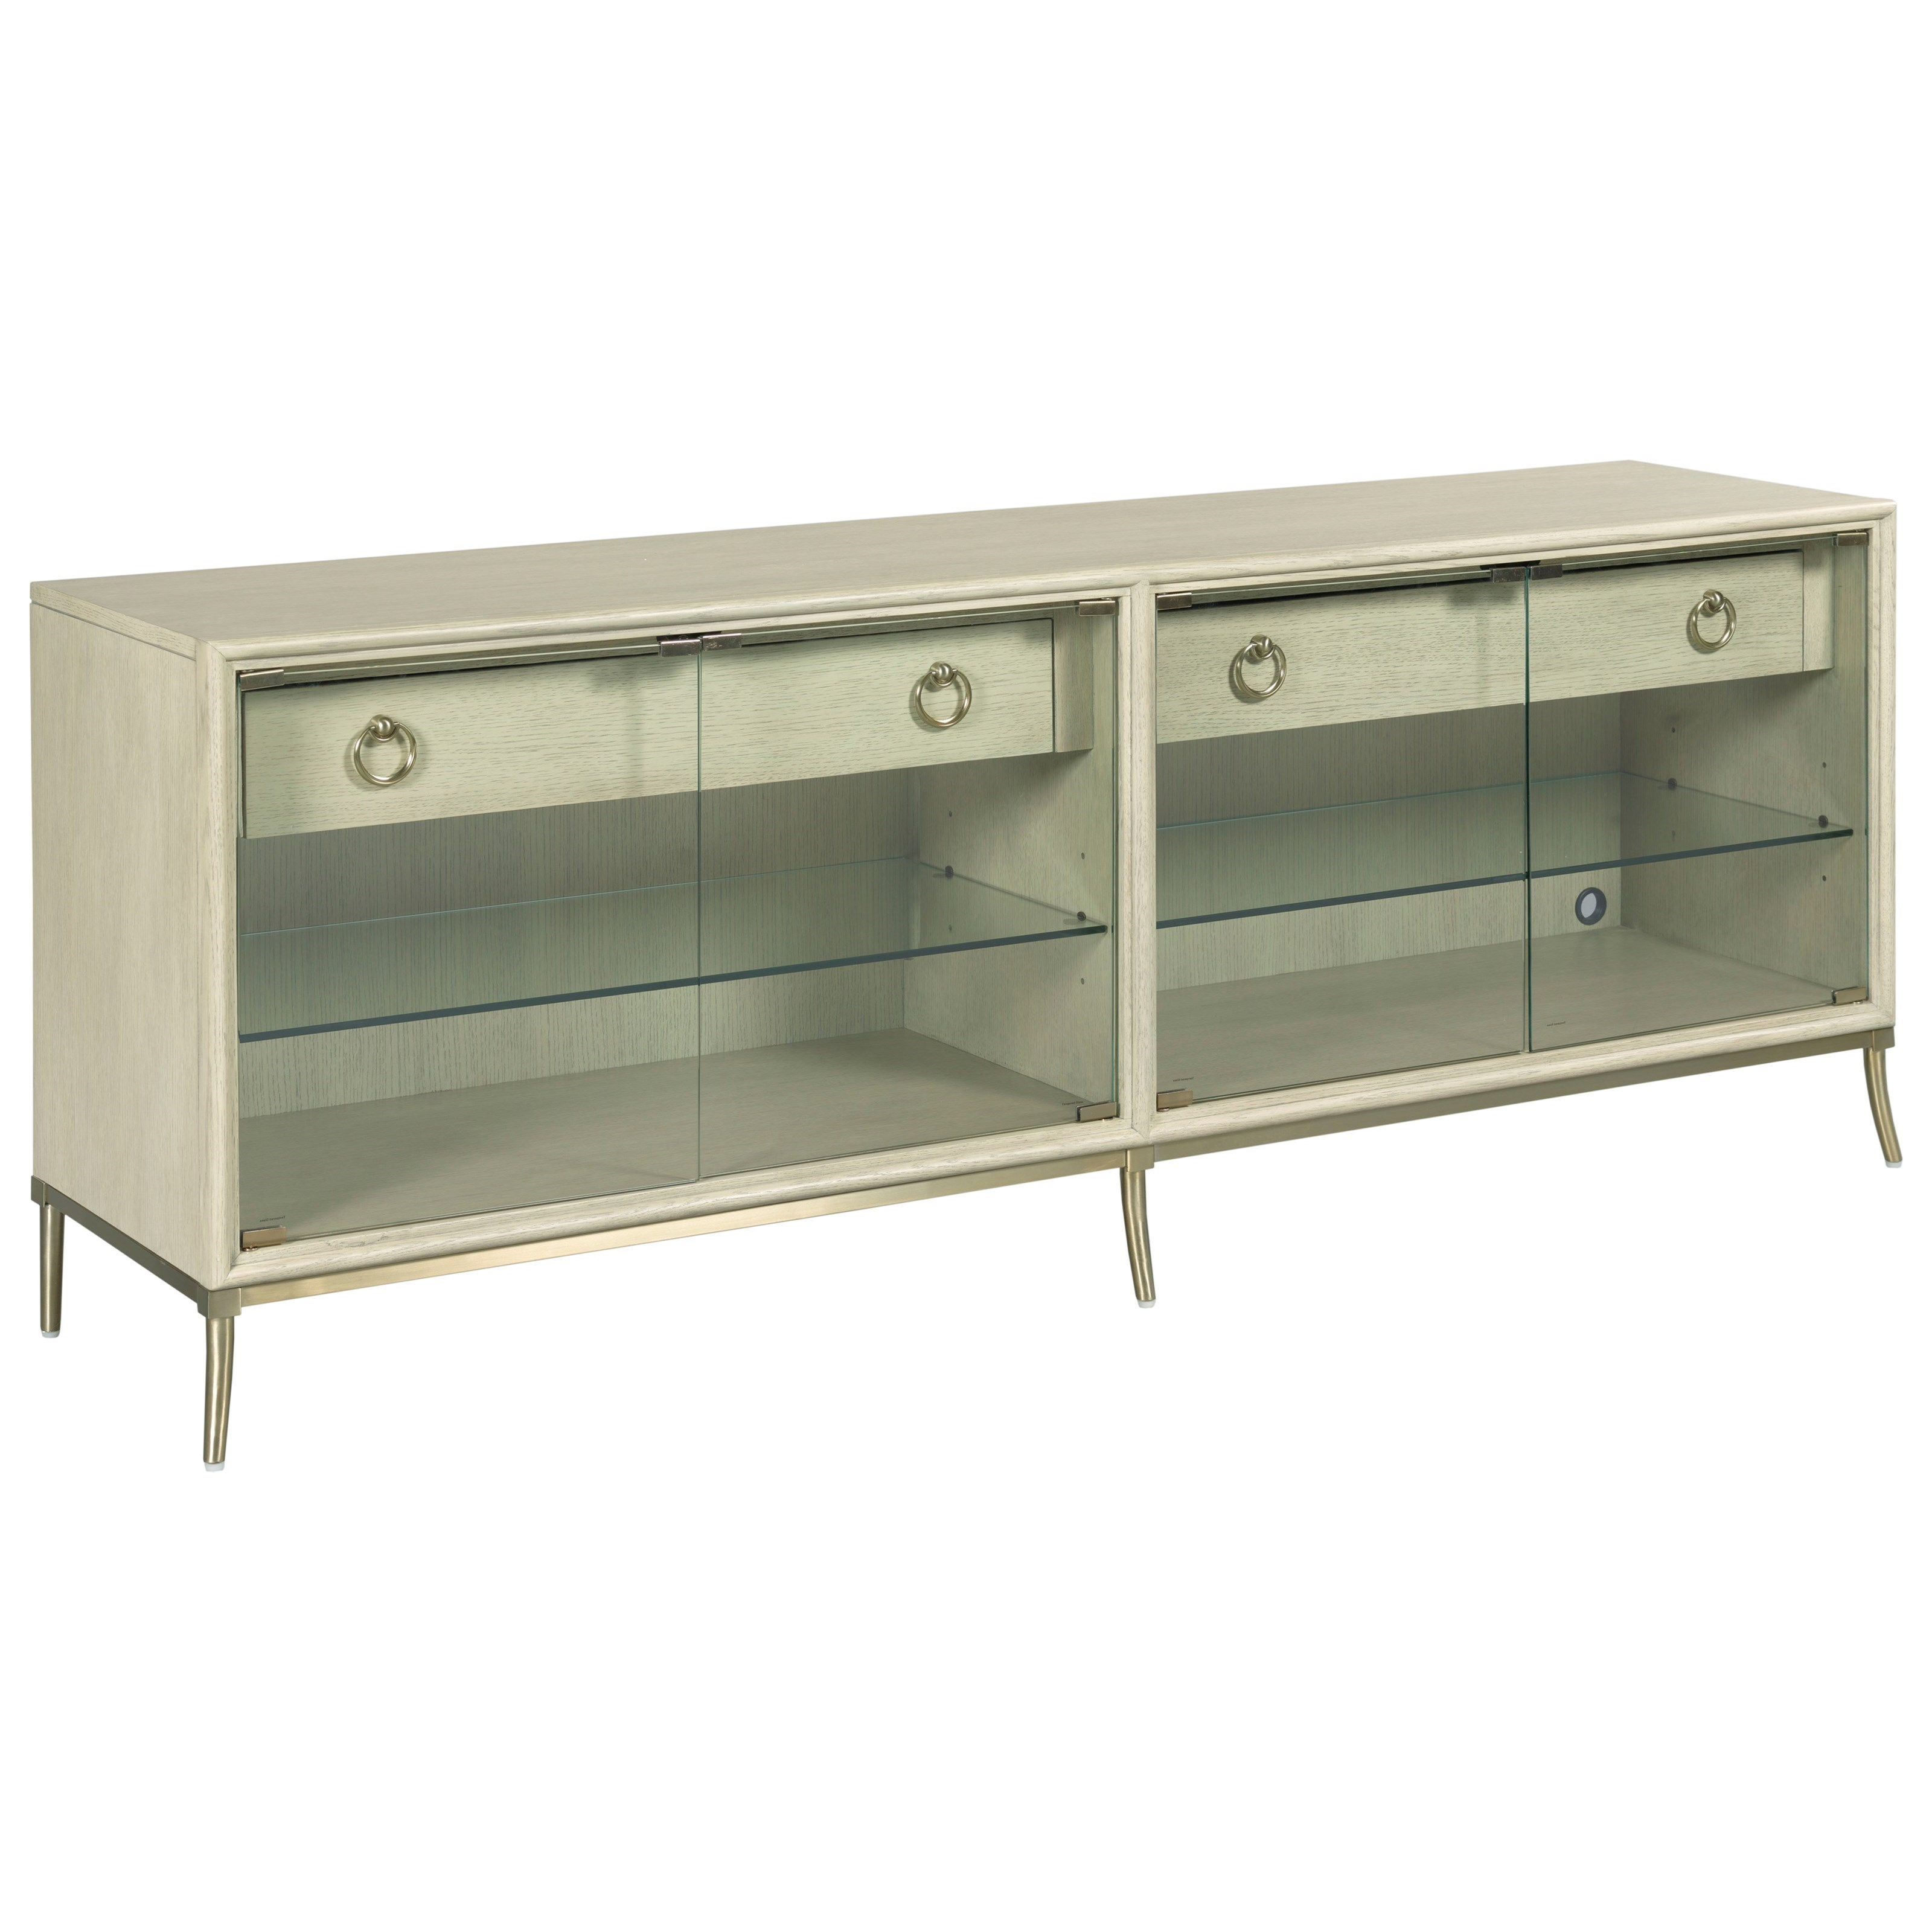 Lenox Entertainment Console by American Drew at Alison Craig Home Furnishings